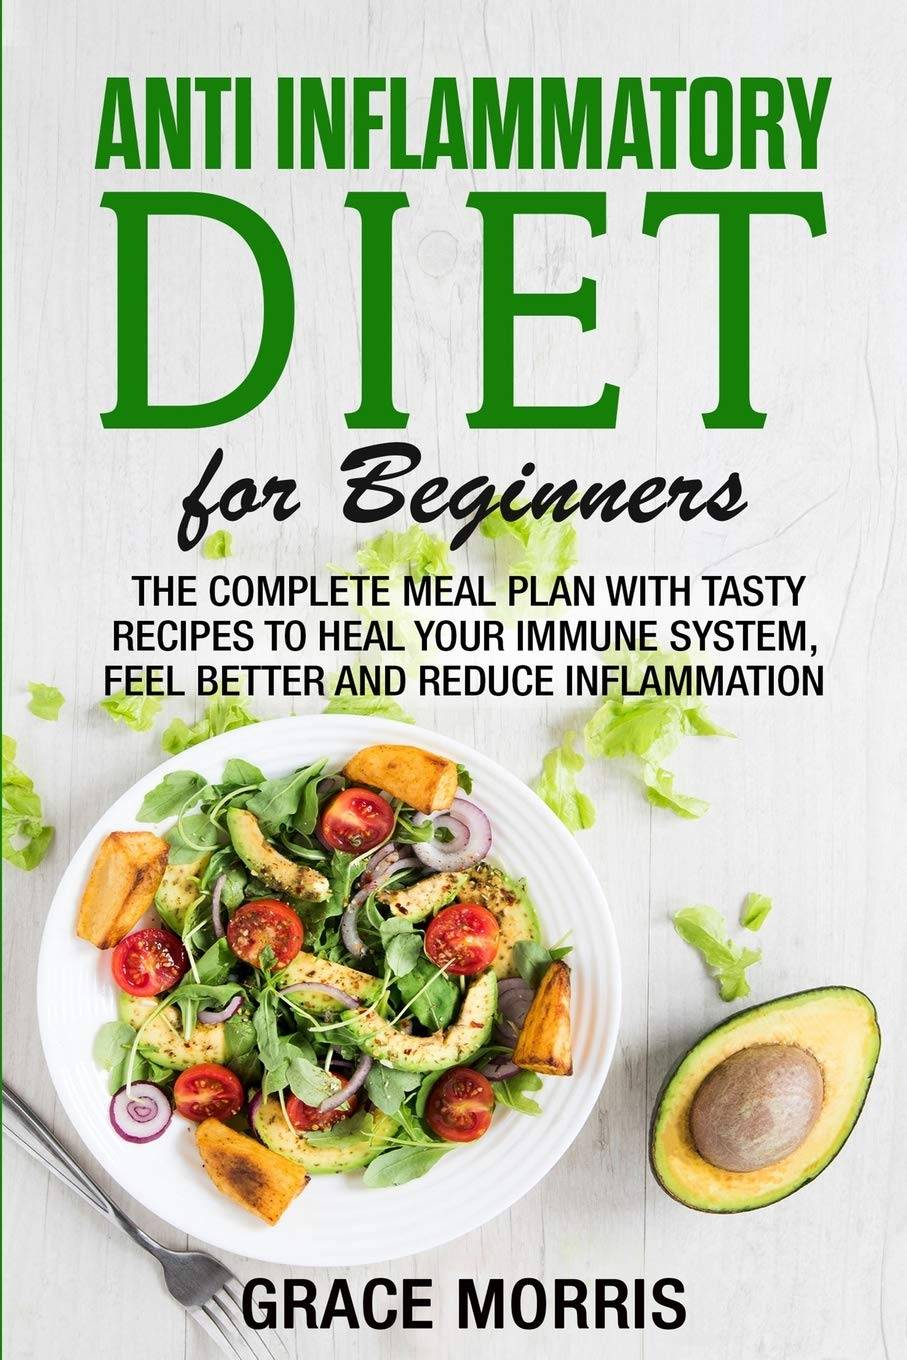 Anti Inflammatory Diet For Beginners The Complete Meal Plan With Tasty Recipes To Heal Your Immune System Feel Better And Reduce Inflammation Morris Grace 9798649718776 Amazon Com Books